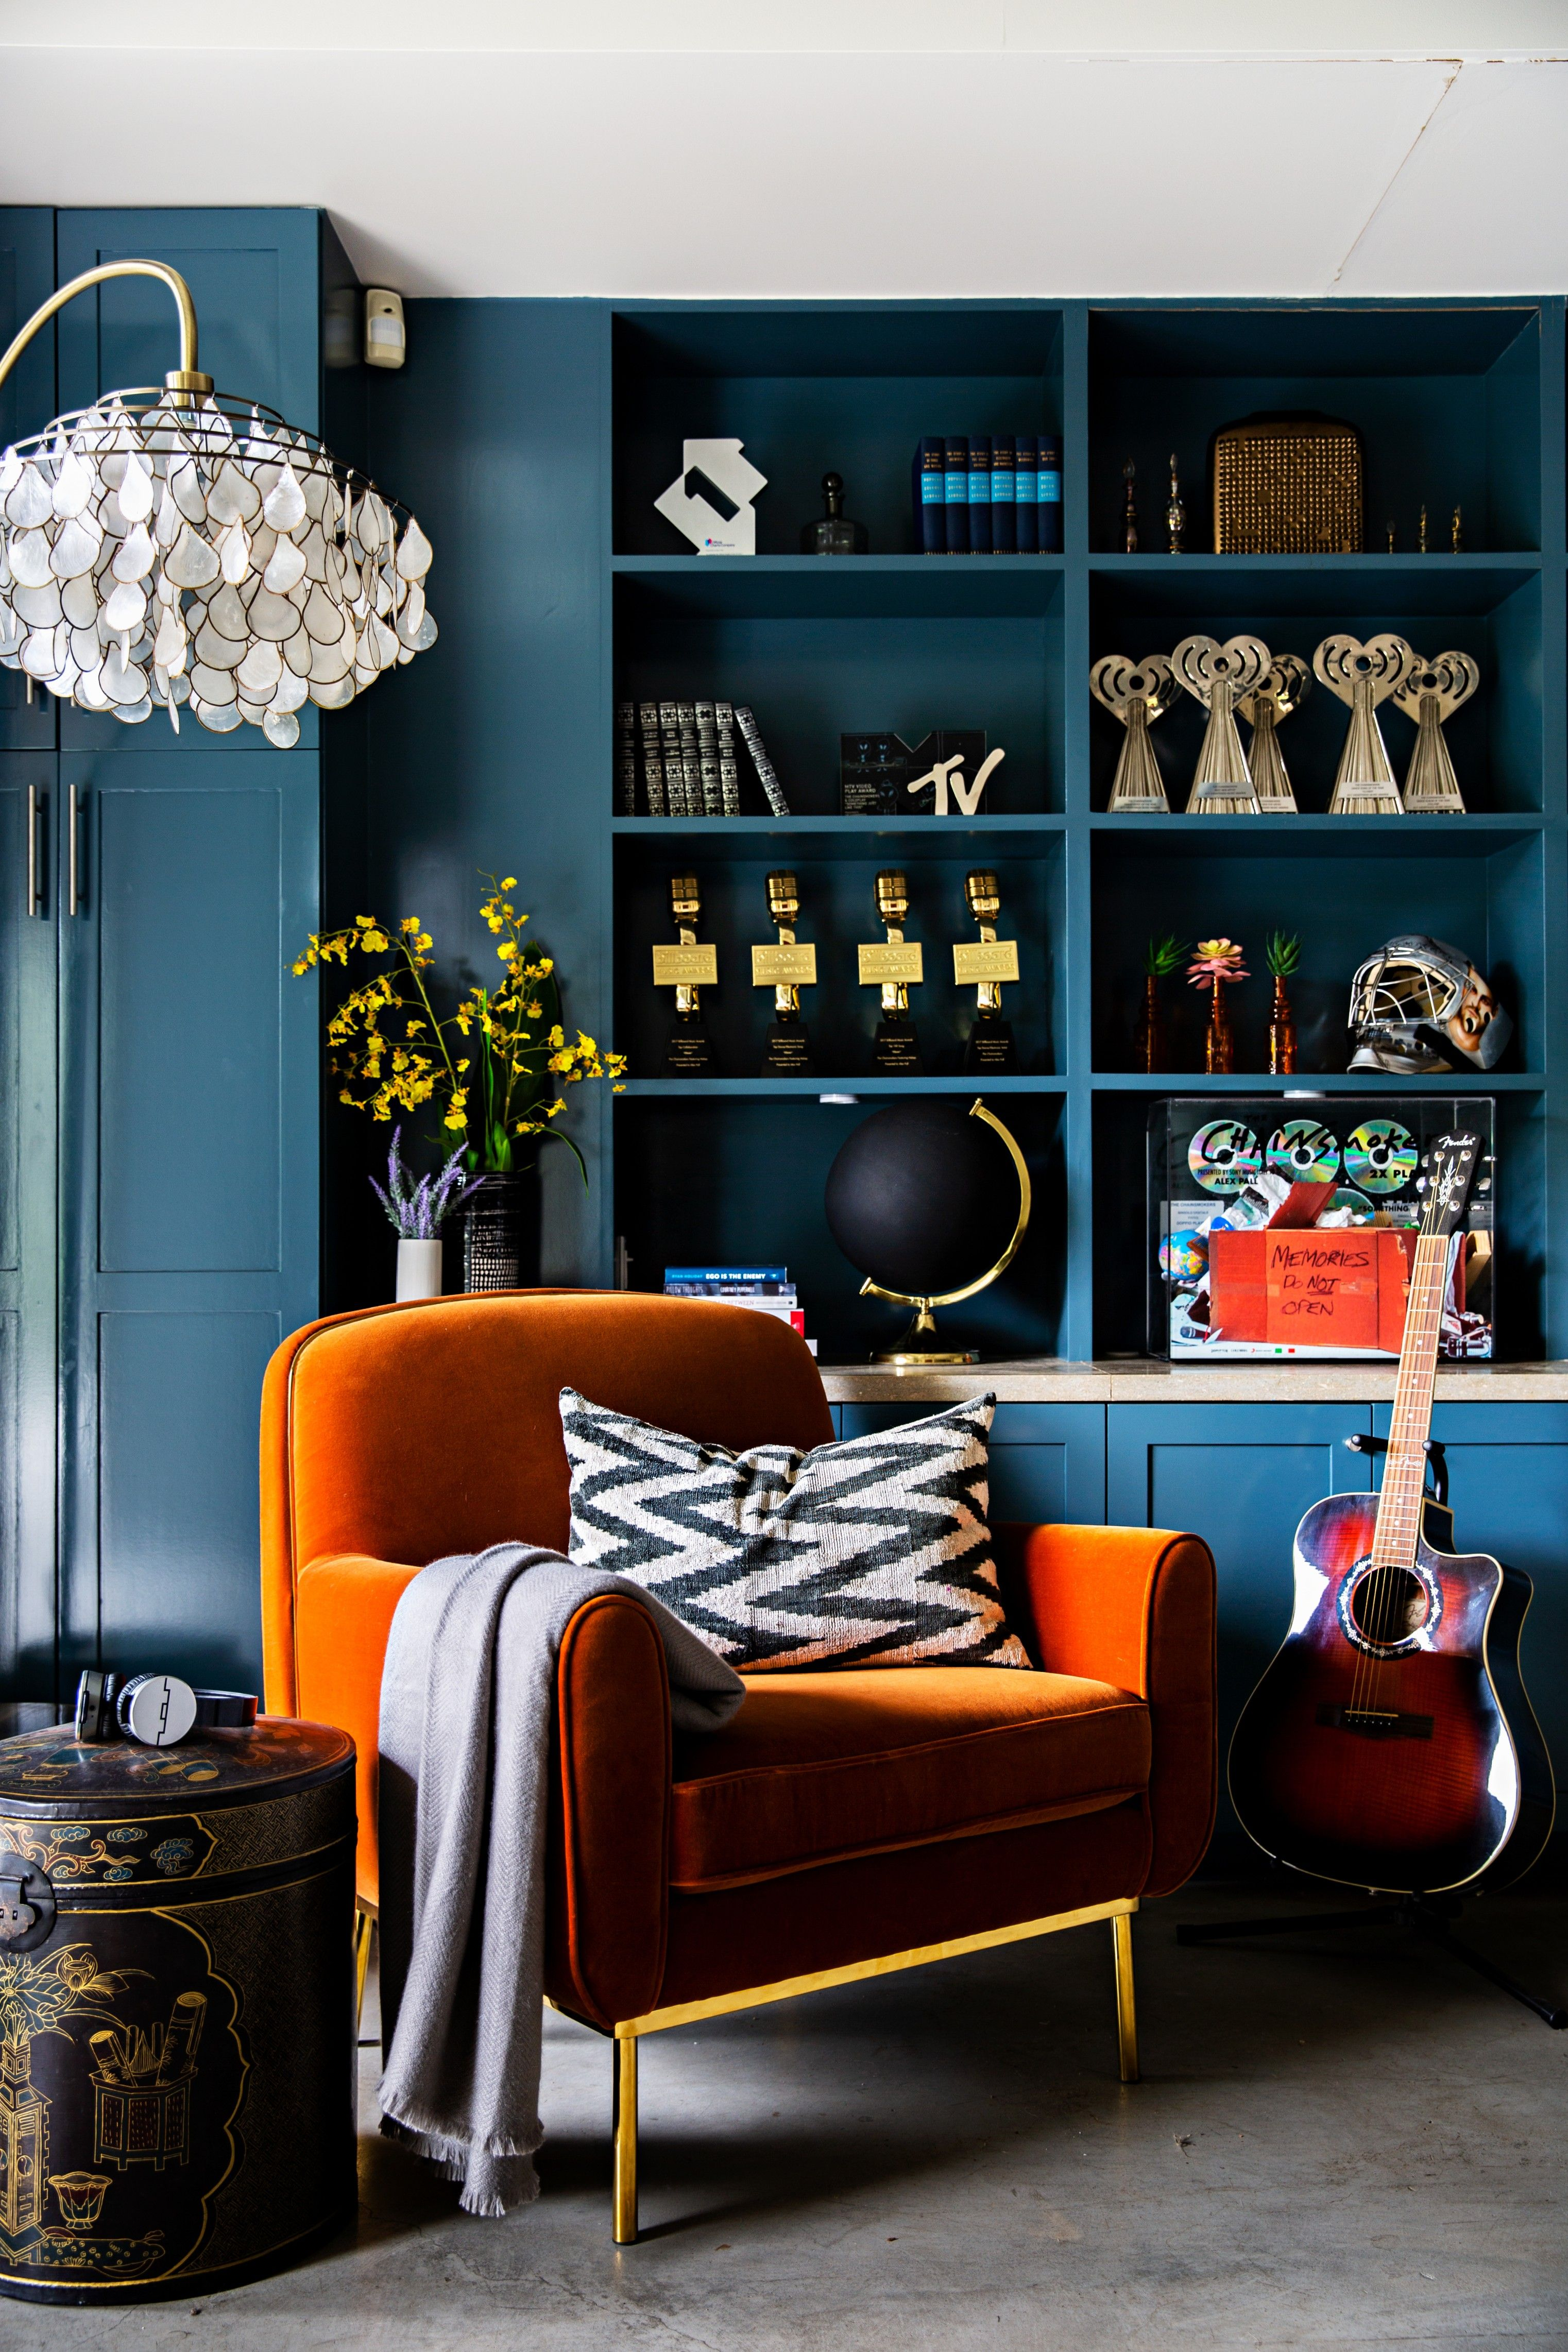 Inspiration Eclectic Chic Decor For Your Home In 2020 Li